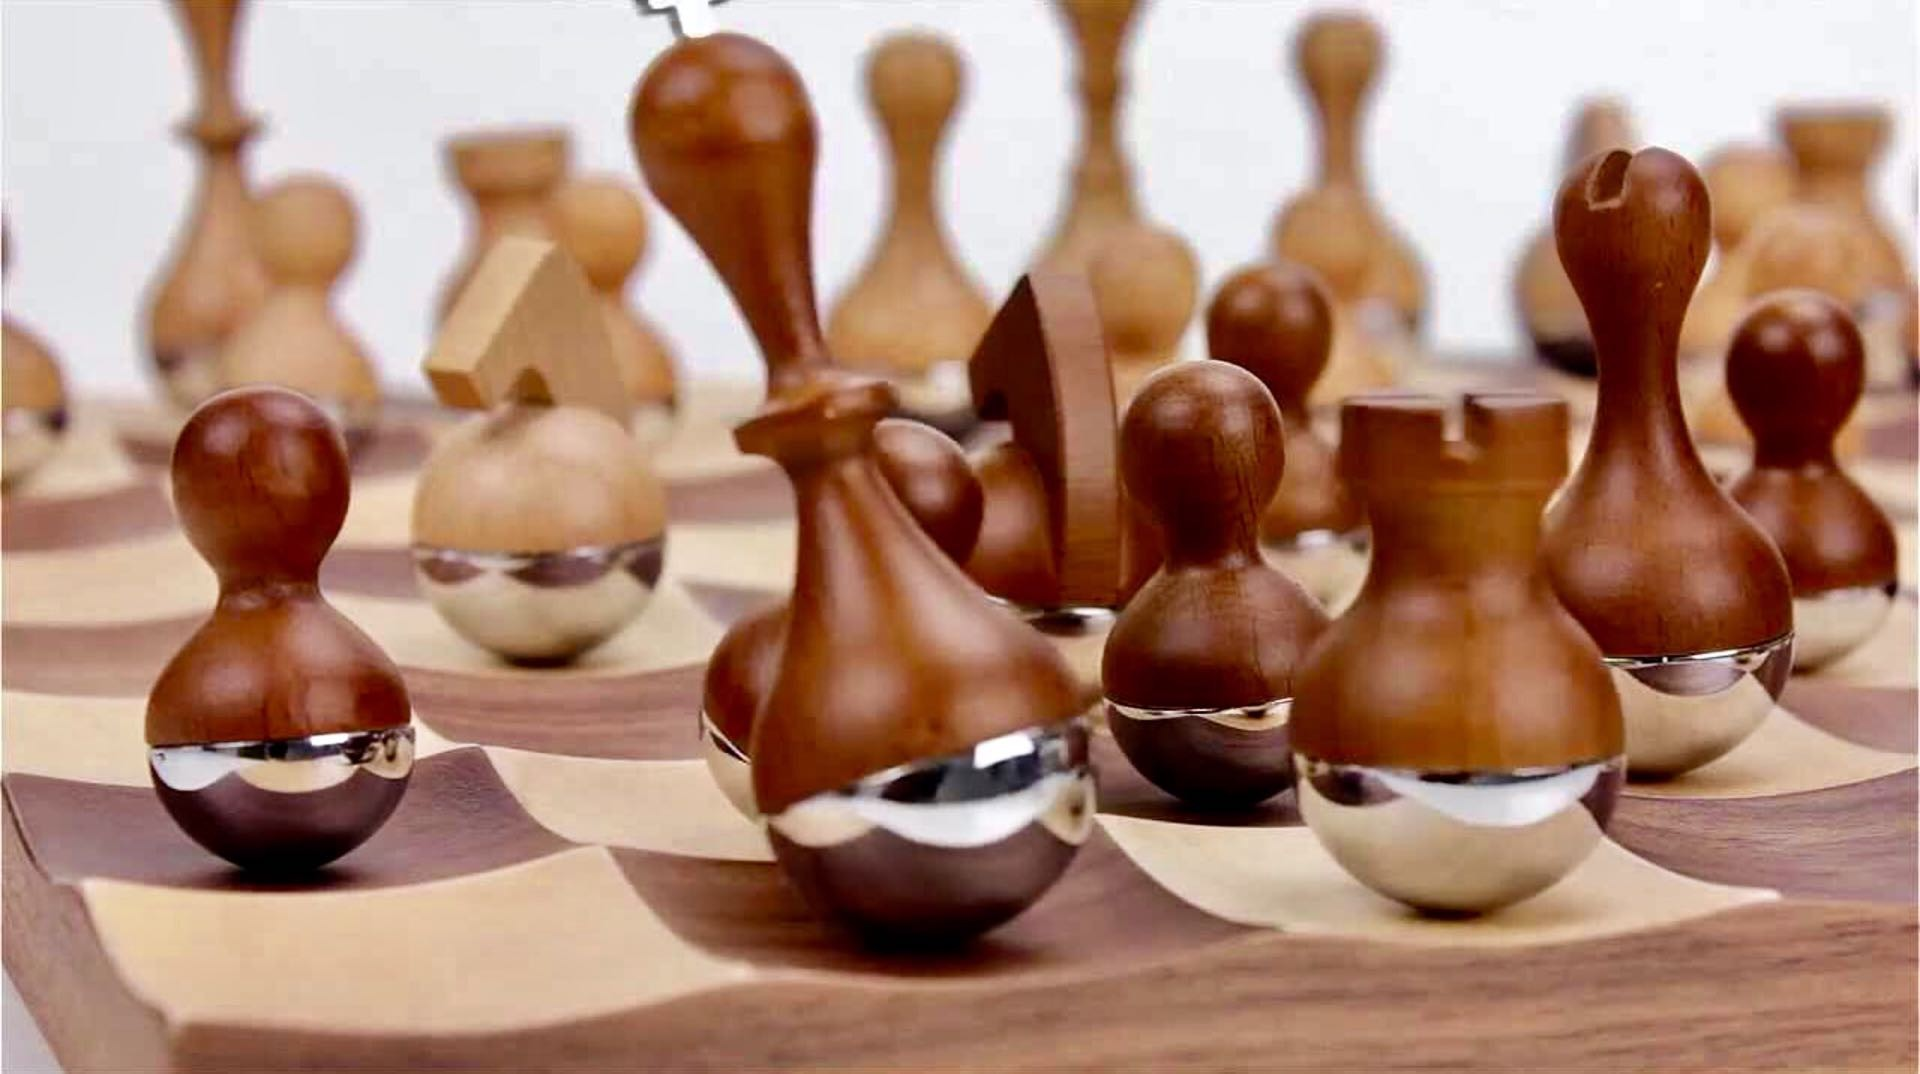 The Wobble Chess Set by Umbra is a charming modern take on an ancient classic. ($189)